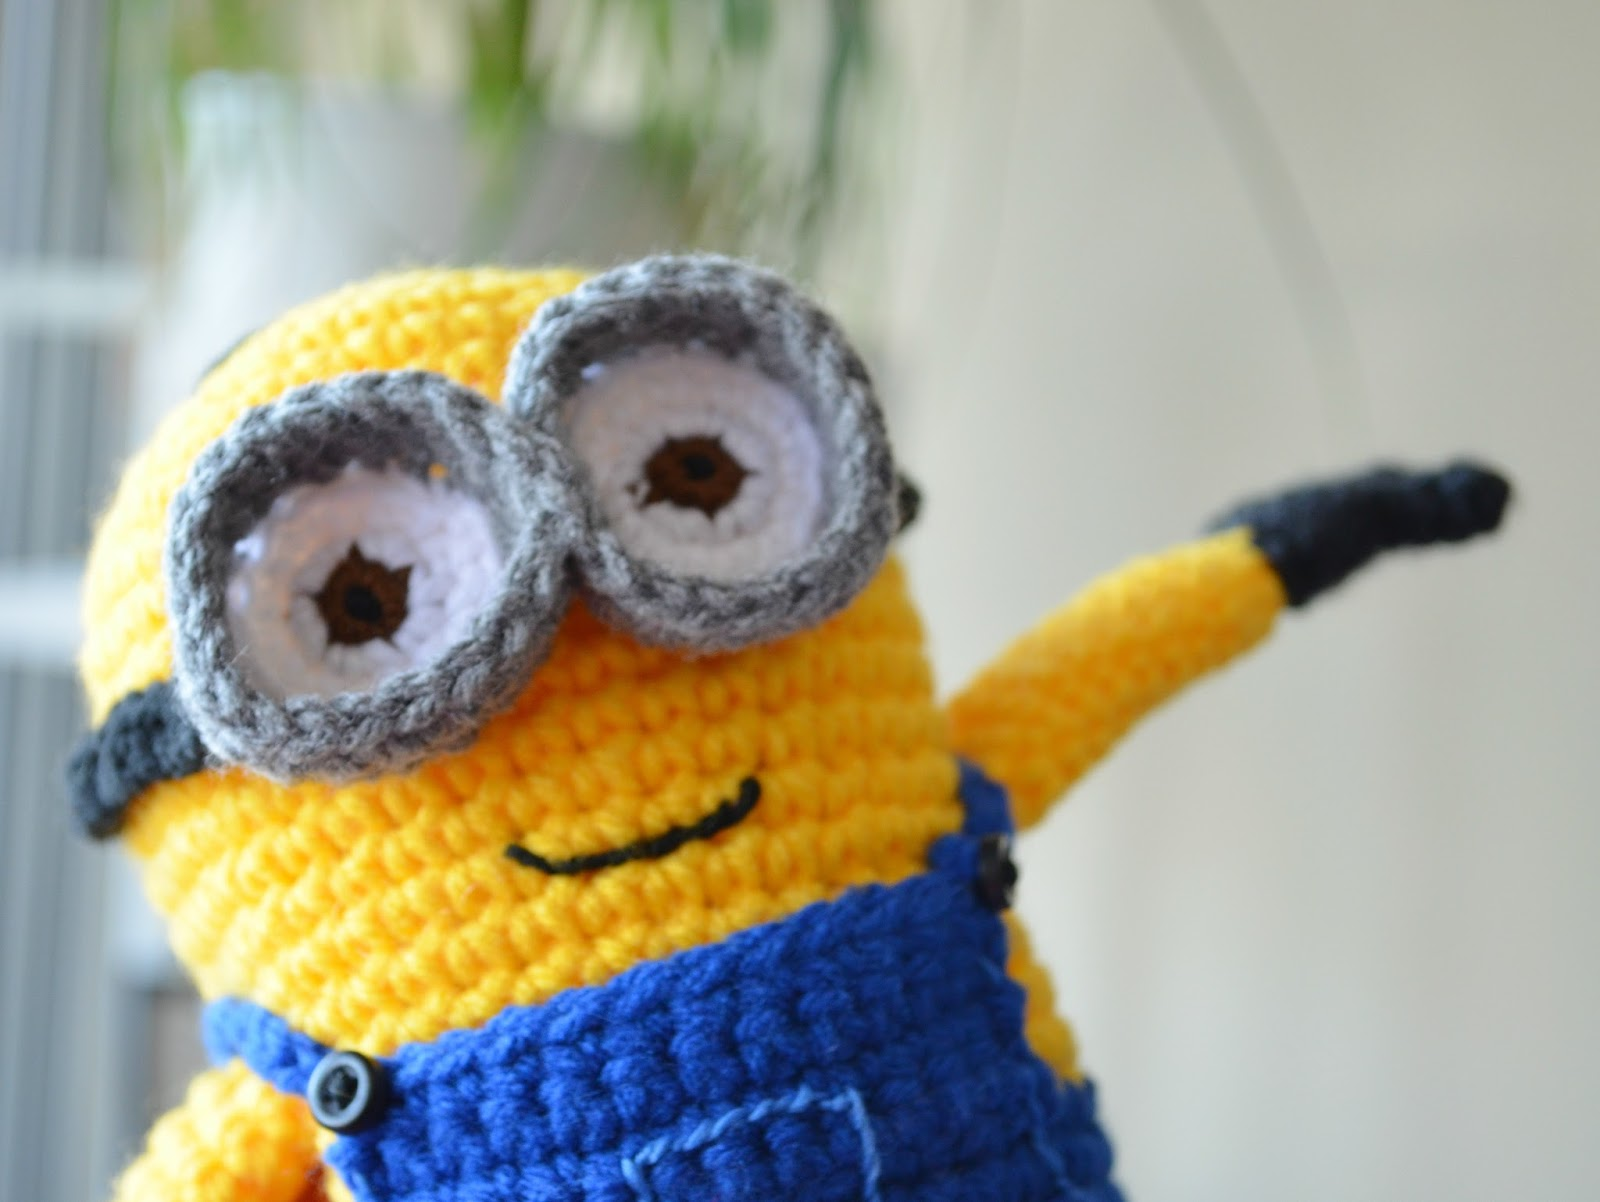 Crochet Patterns Minions : Hopeful Honey Craft, Crochet, Create: Free Minion ...